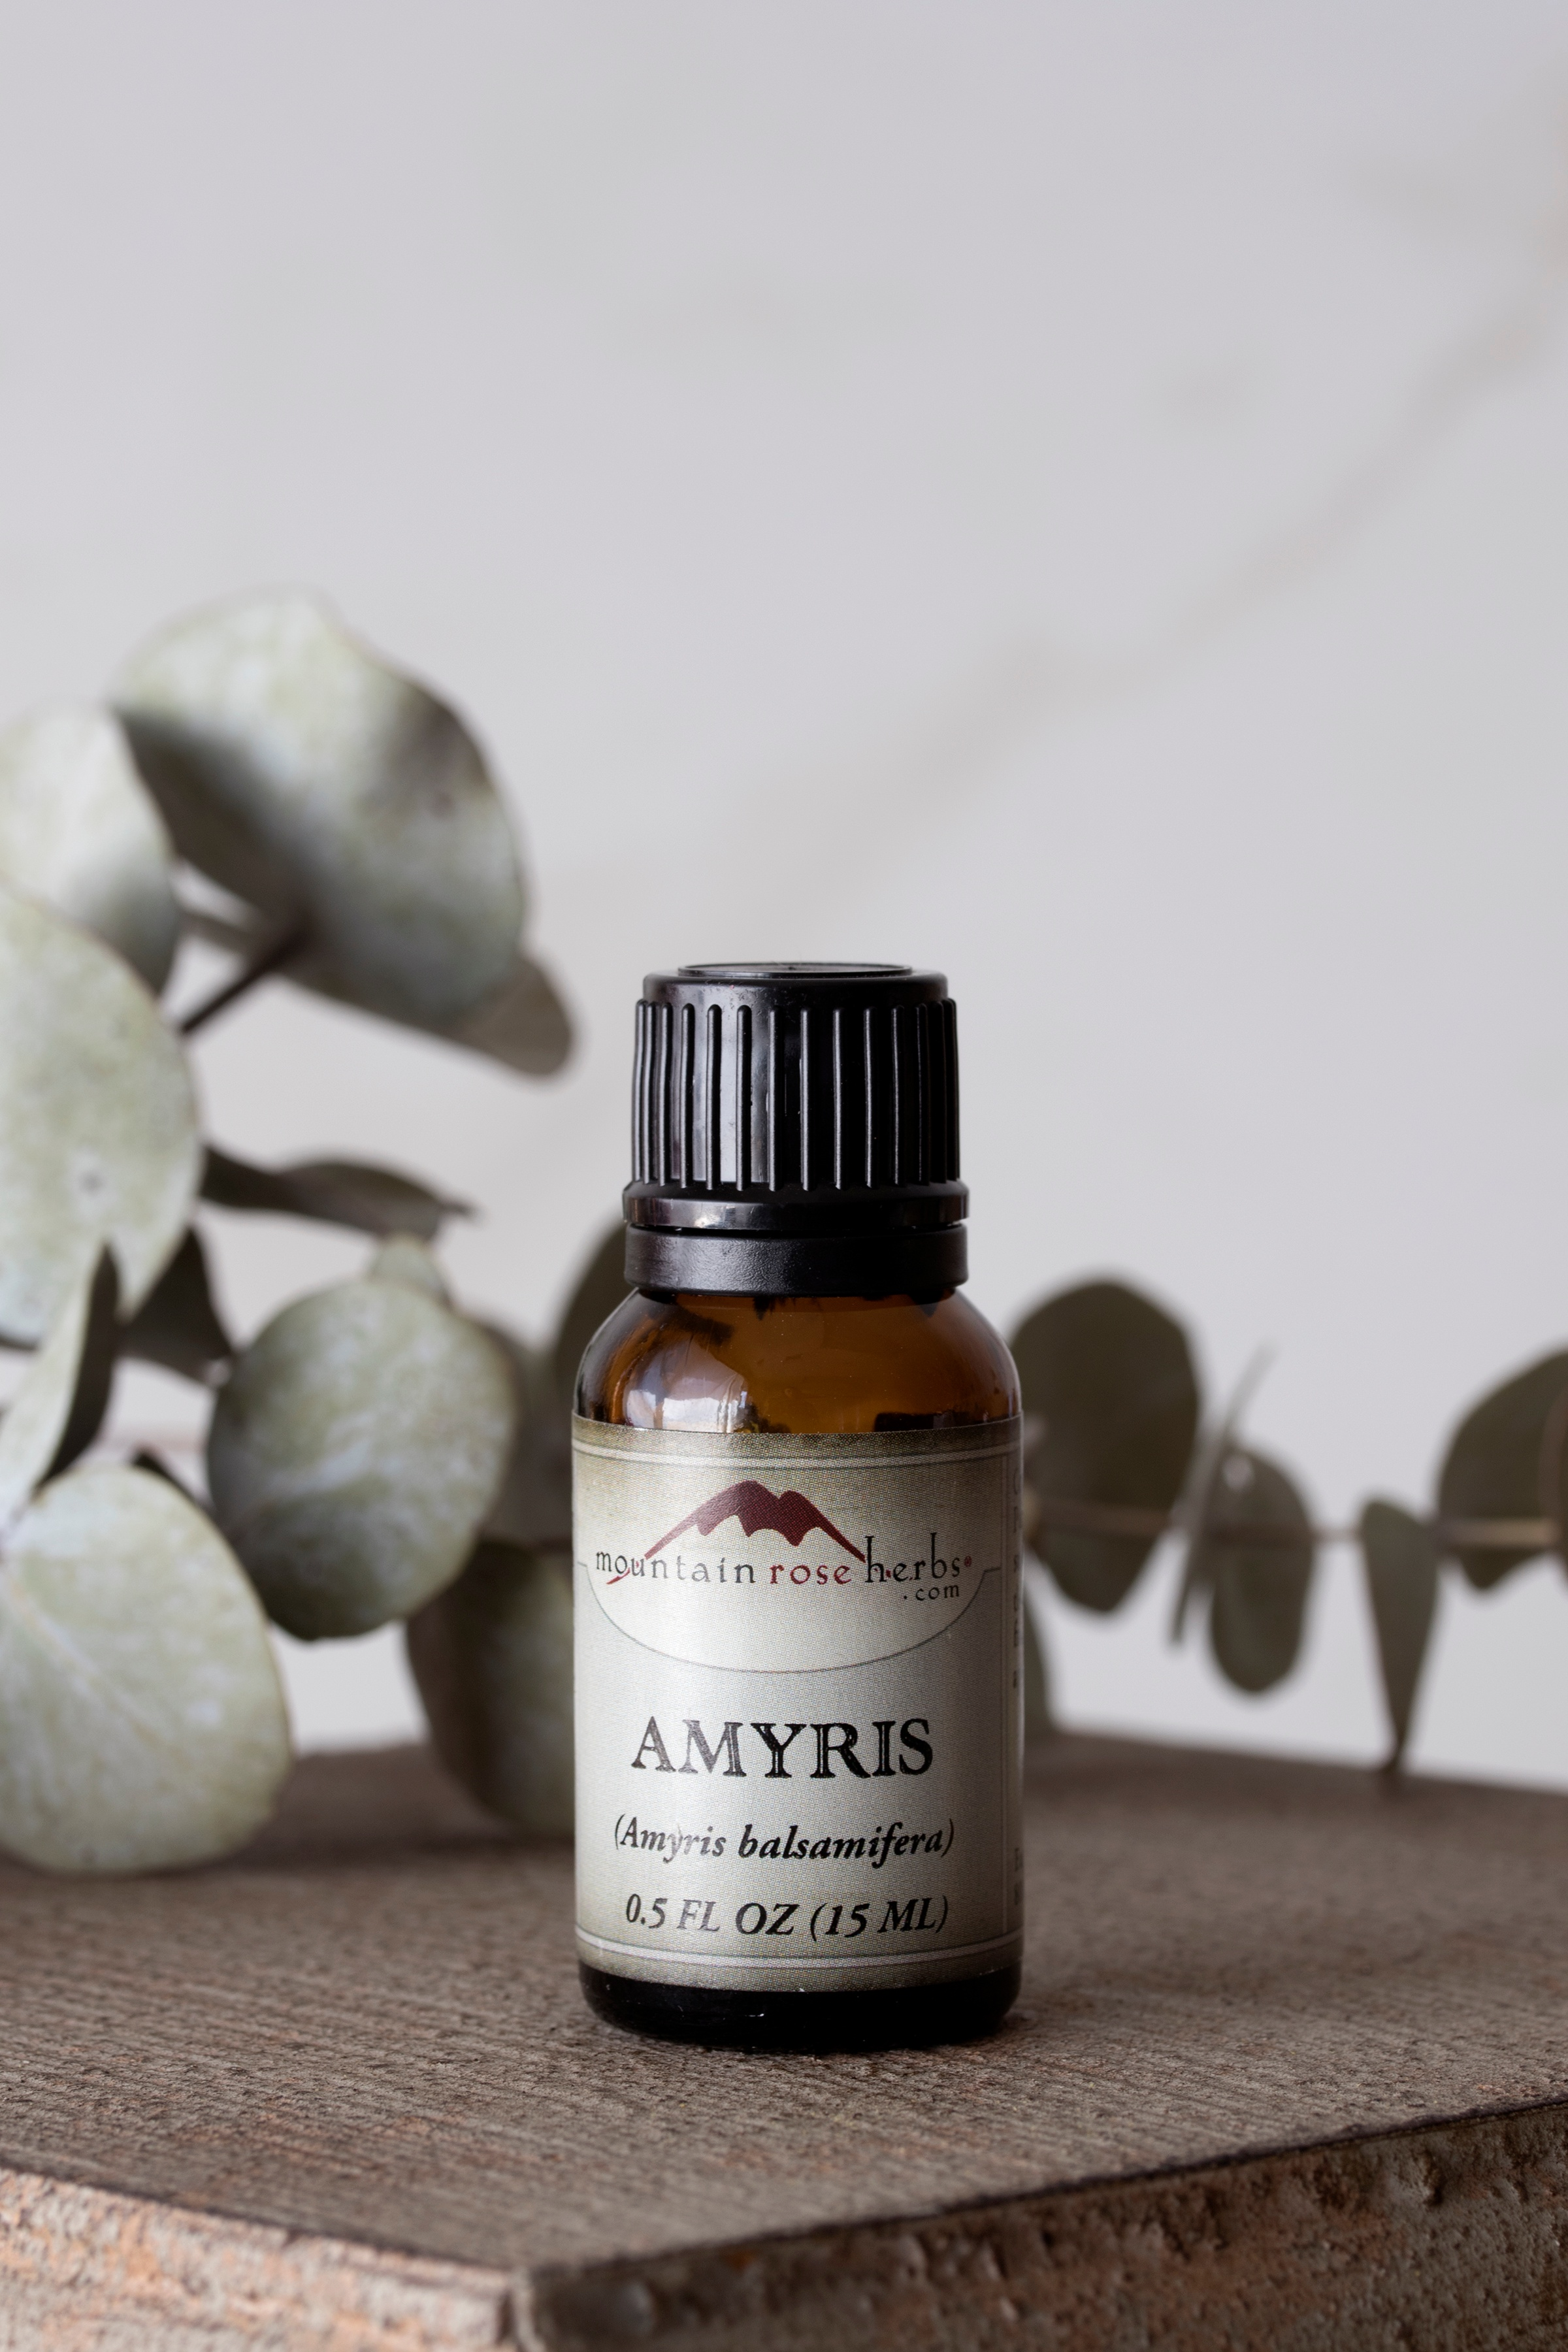 Amyris Essential Oil .5 oz bottle from Mountain Rose herbs